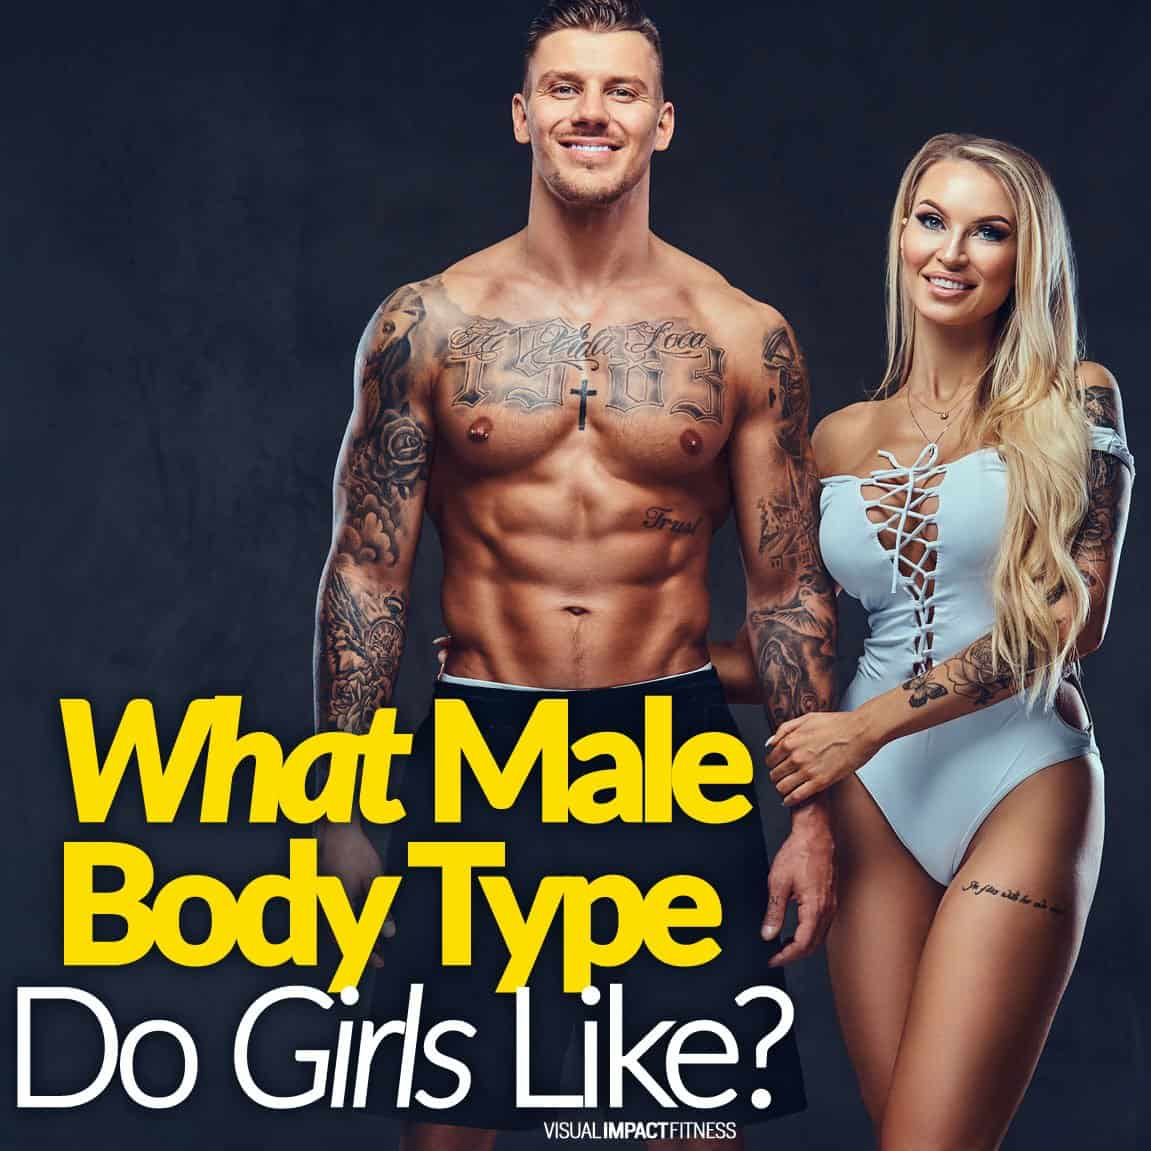 What Male Body Type Do Girls Like